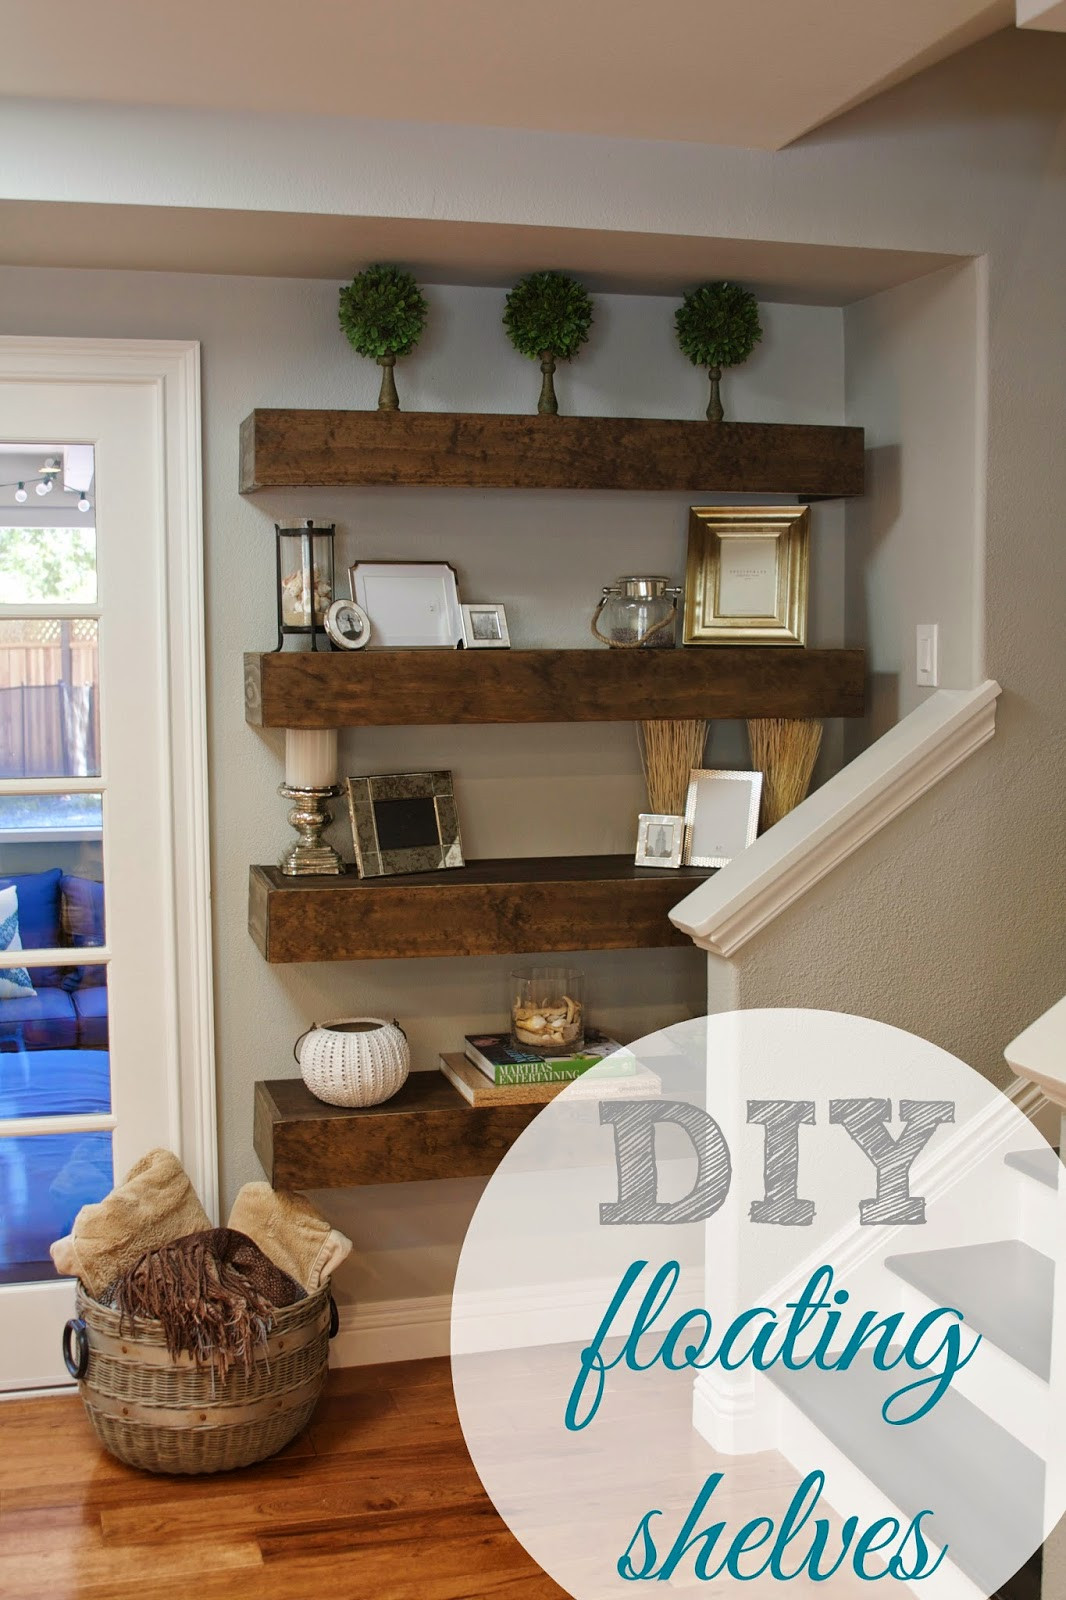 Best ideas about DIY Floating Wall Shelves . Save or Pin Day 27 Shelves 31 Cheap & Easy DIY Organizers Now.